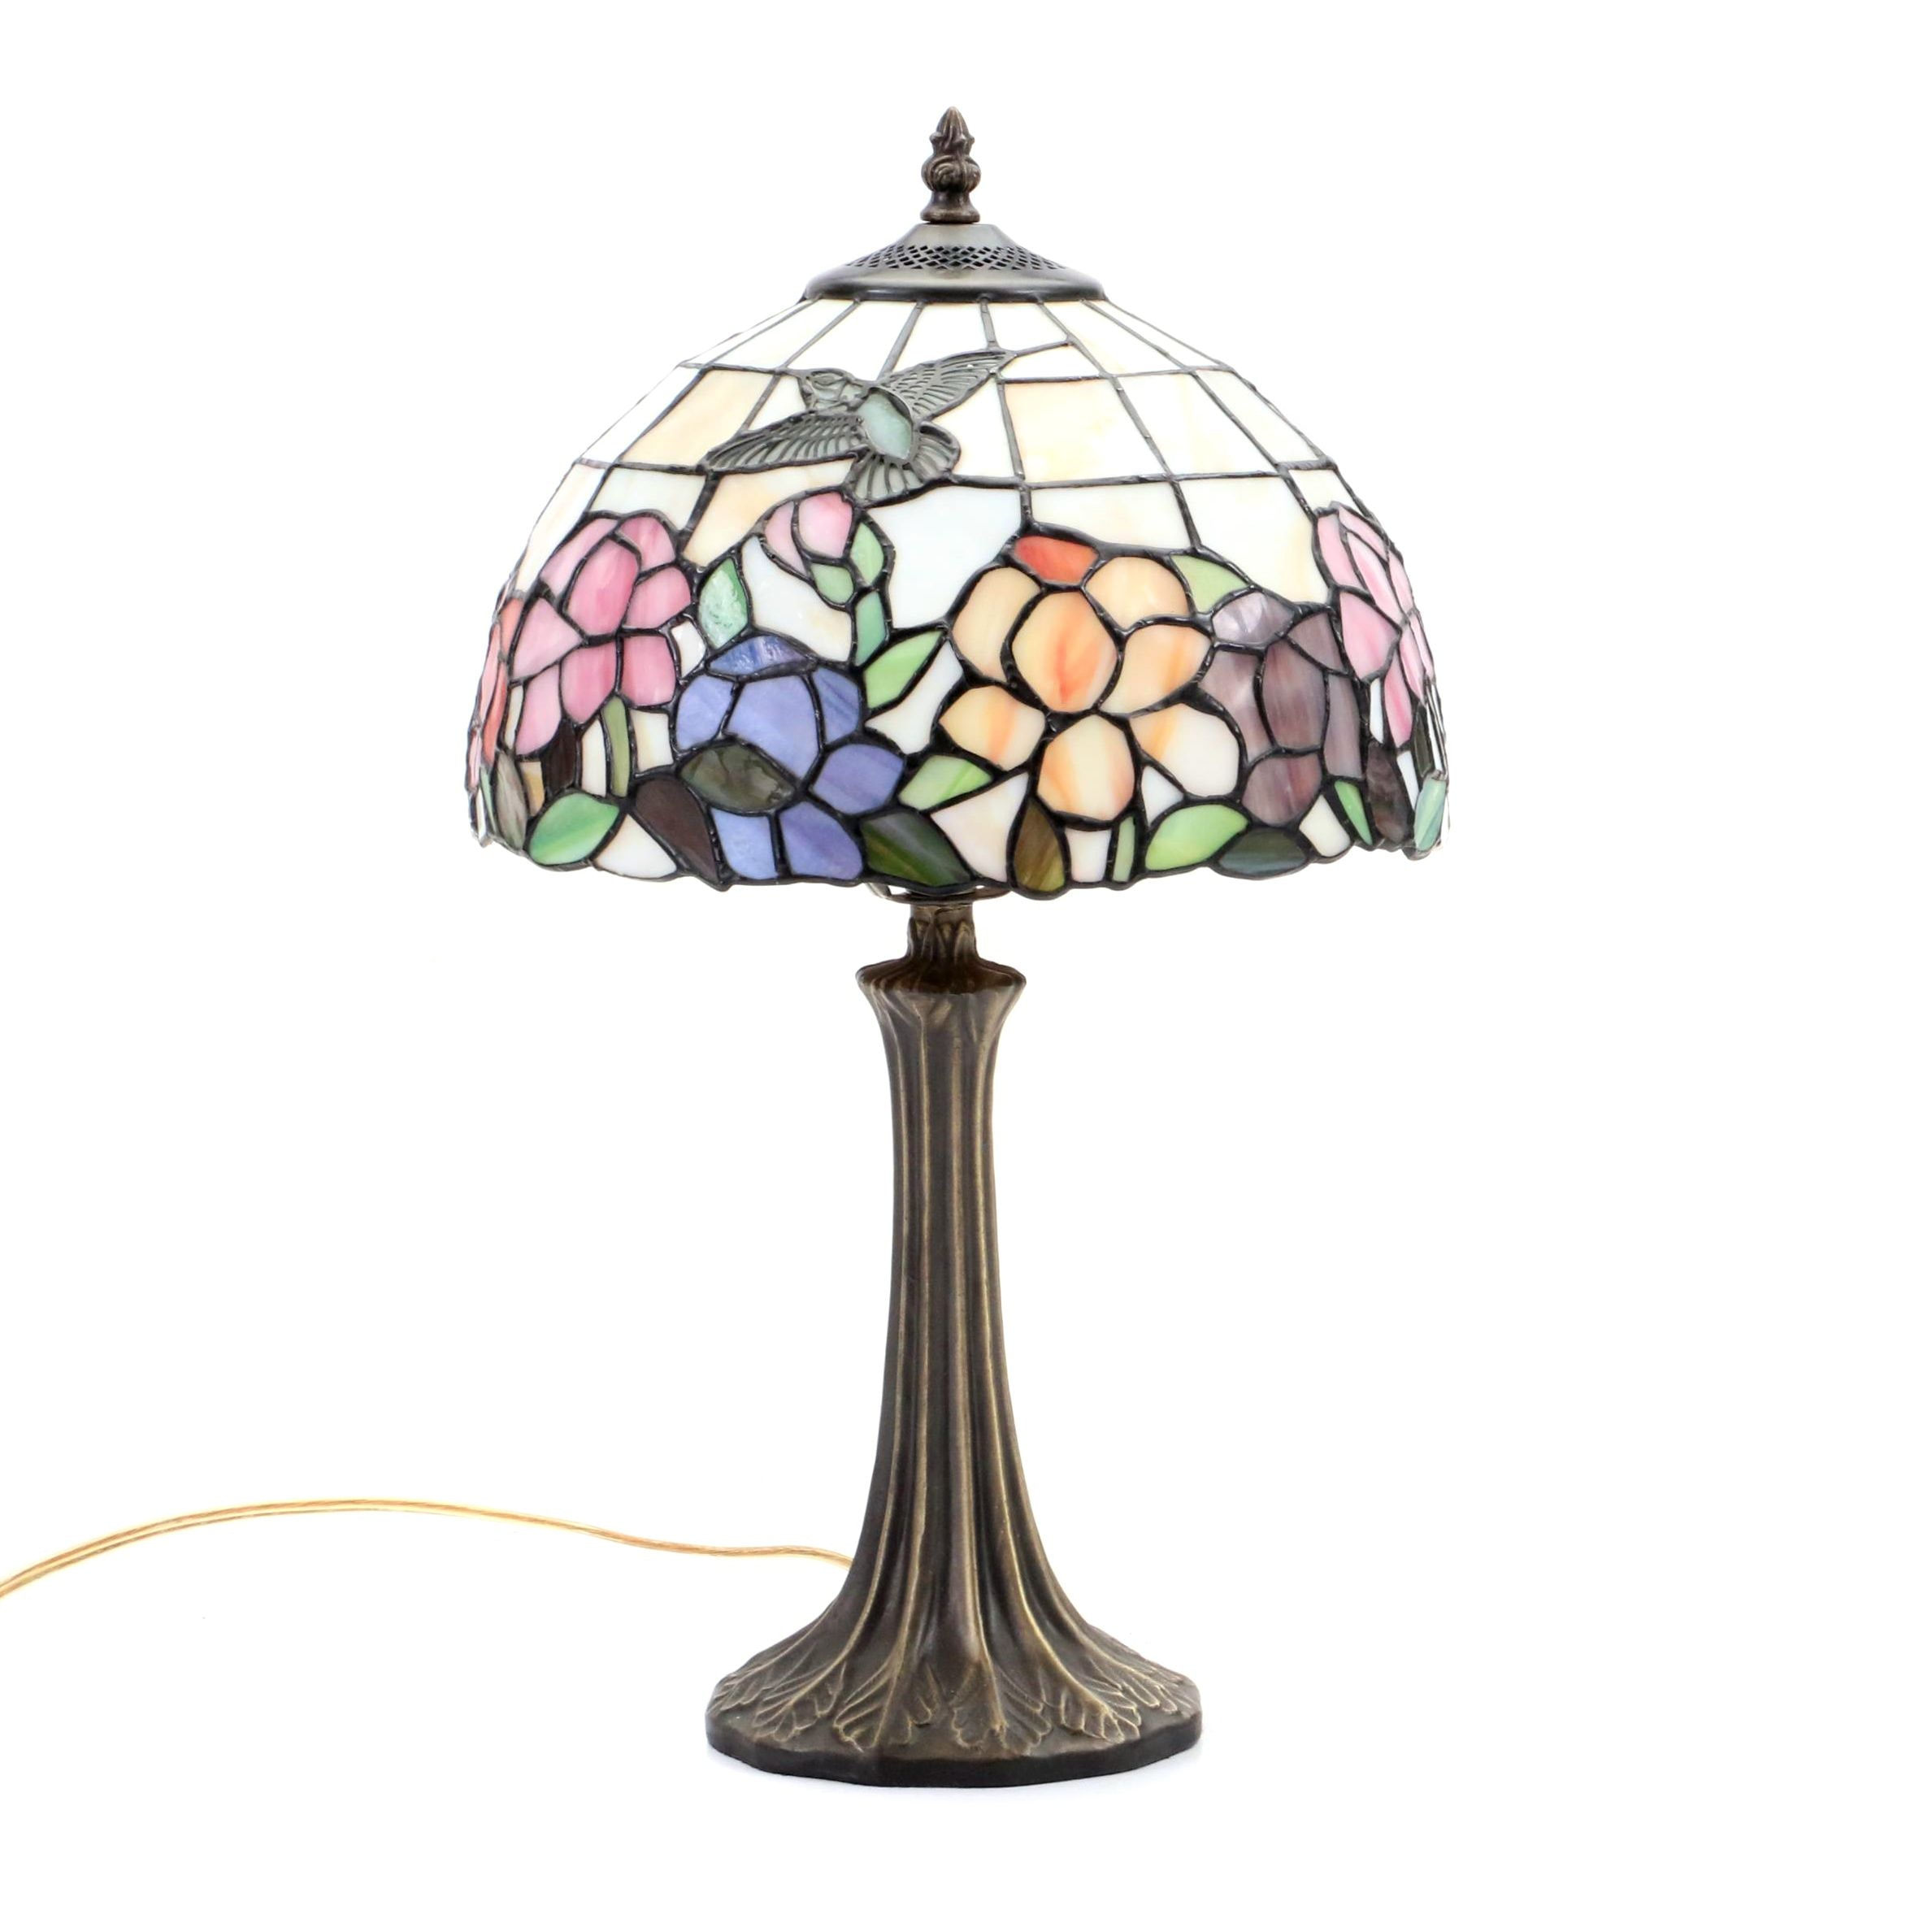 Dale Tiffany Stain Glass Table Lamp with Hummingbird and Floral Motif